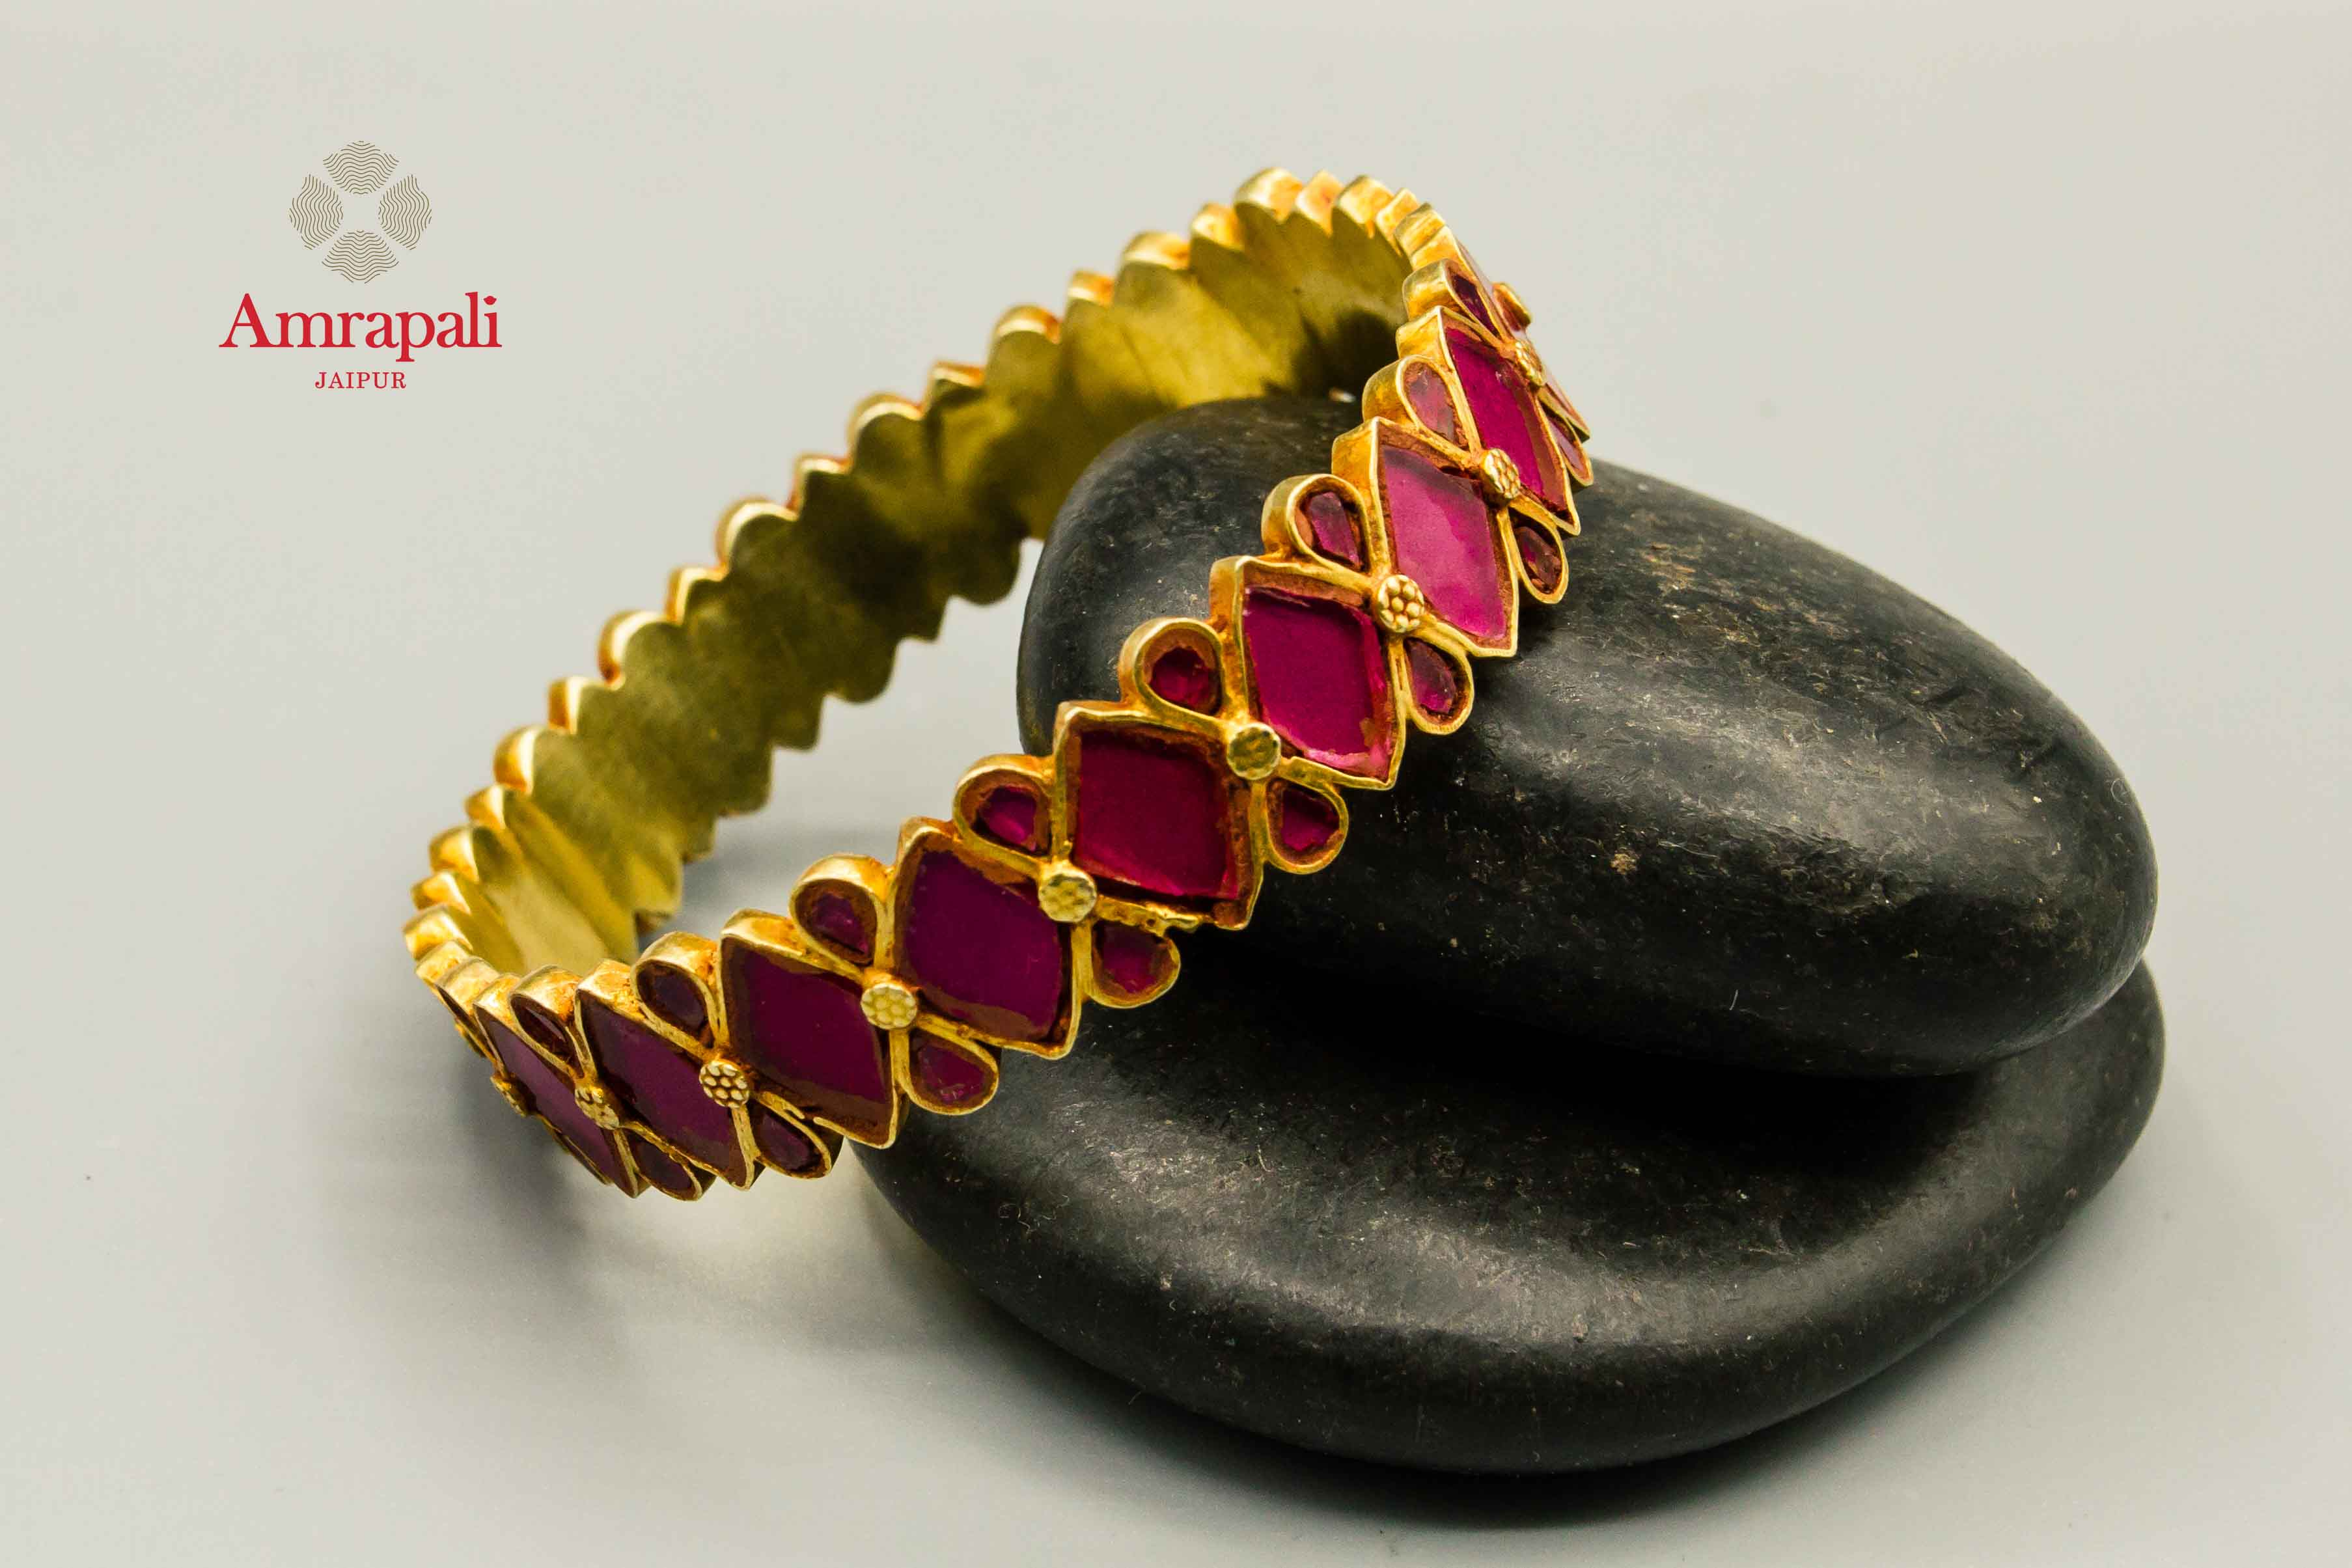 Shop Amrapali silver gold plated pink glass bangle online in USA. Raise your traditional fashion quotient on special occasions with exquisite Indian jewelry from Pure Elegance Indian clothing store in USA. Enhance your look with silver gold plated jewelry, fashion jewelry available online.-flatlay